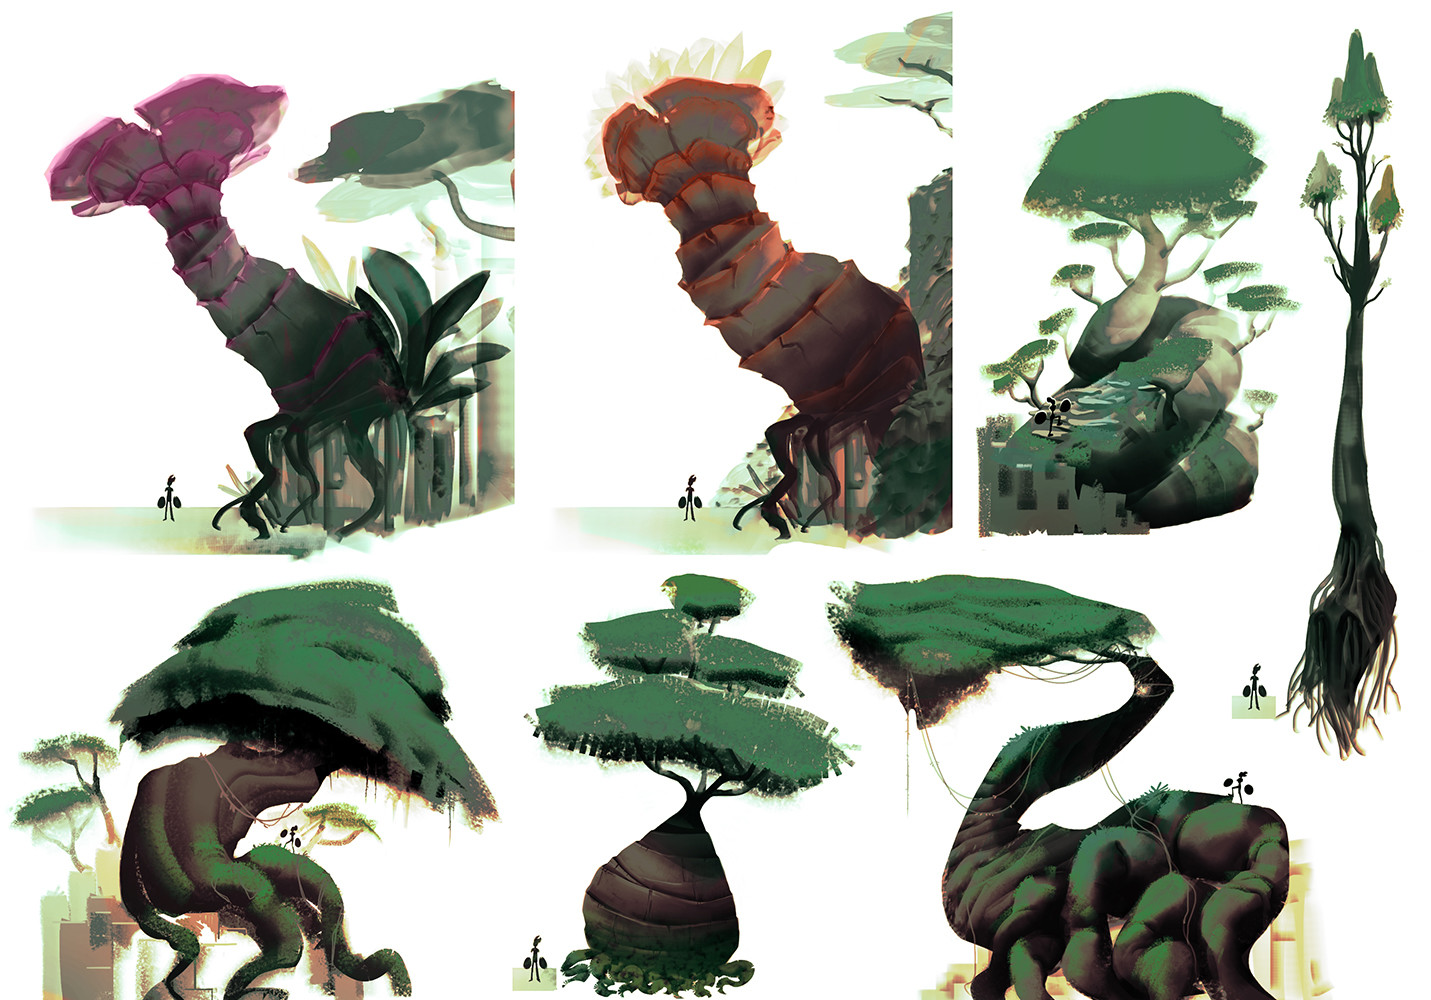 Alexis rives arbres concepts